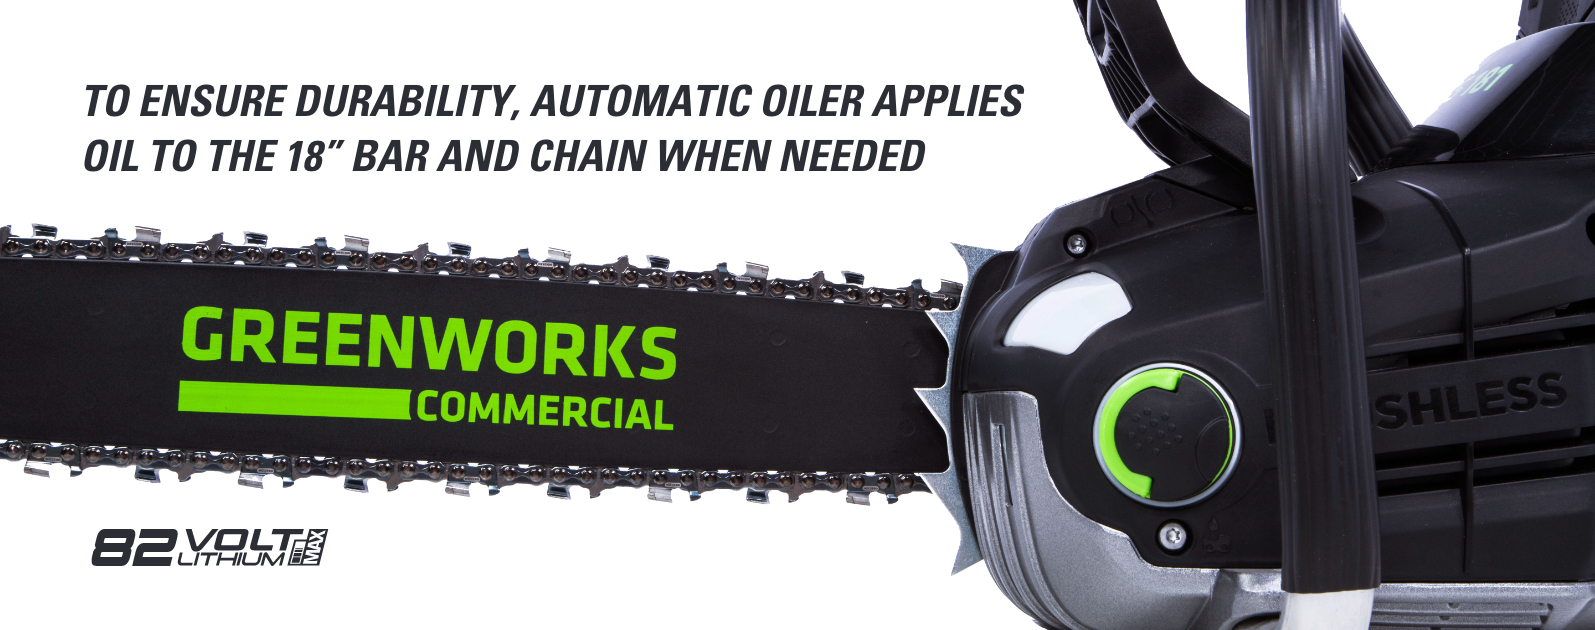 82V 18-Inch Chainsaw | Greenworks Commercial